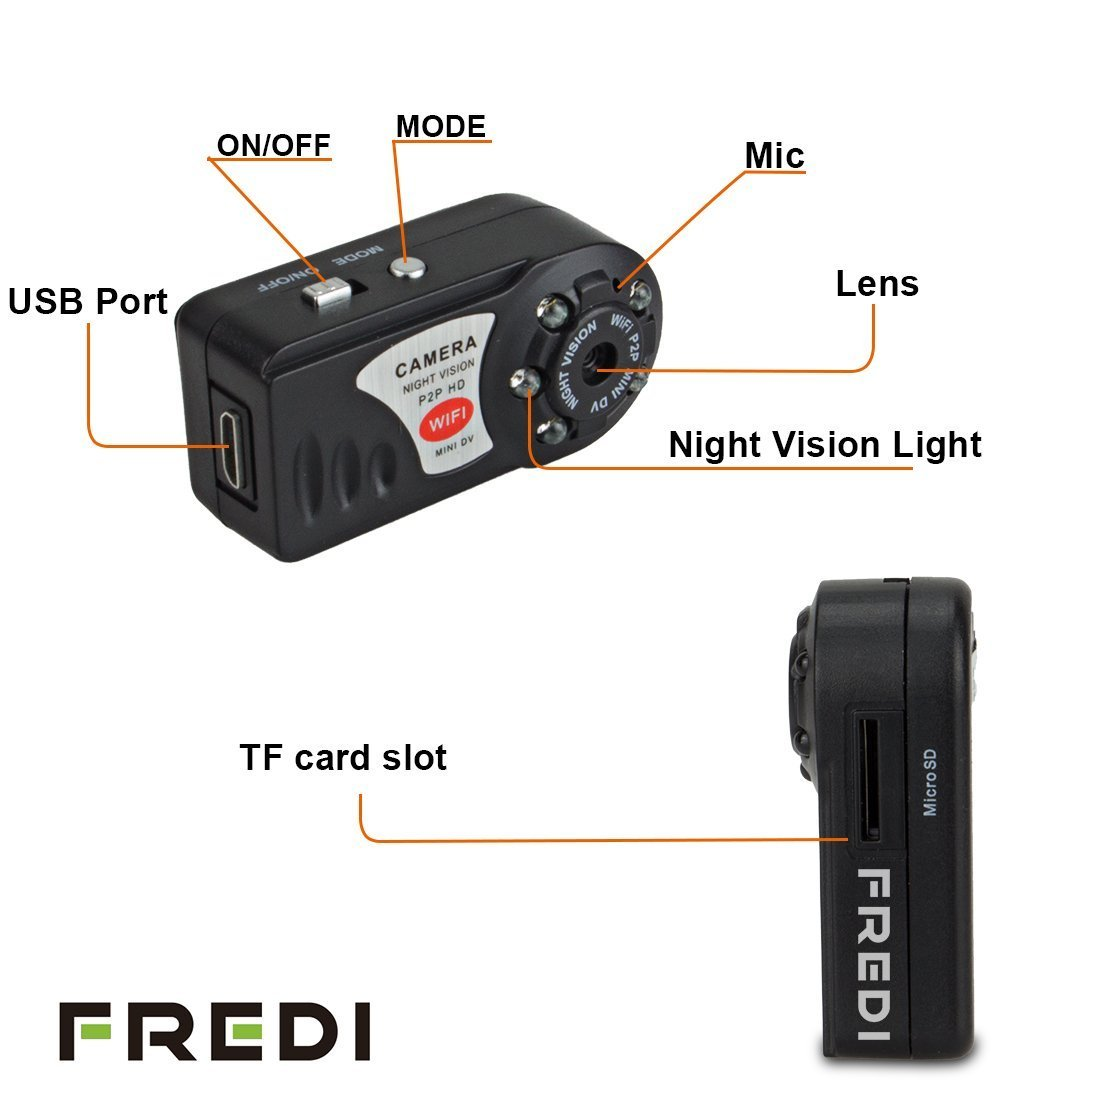 Buy FREDI Motion activated mini hidden camera 720p HD mini wifi ... for Mini Spy Camera For Iphone  61obs